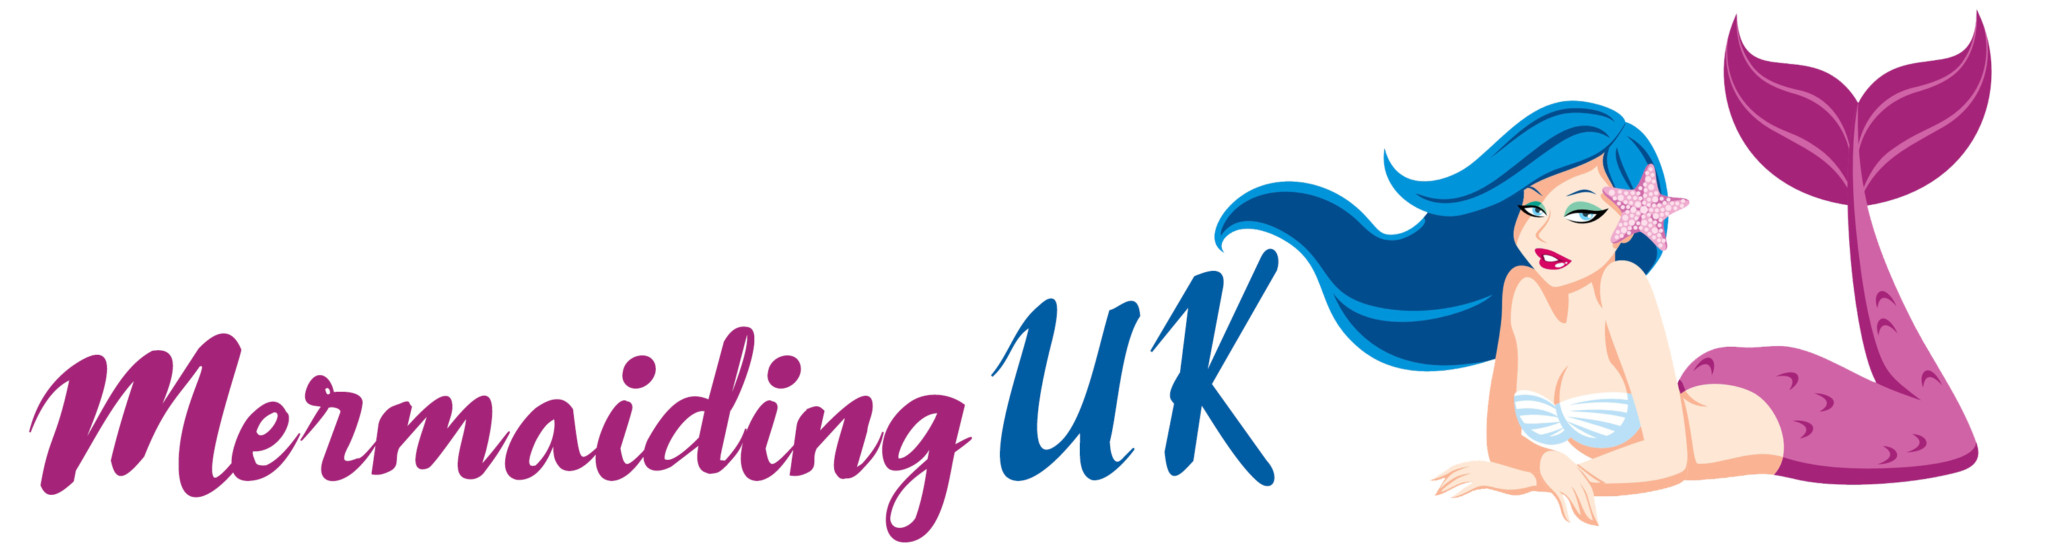 Mermaiding UK logo | mermaiding.co..uk